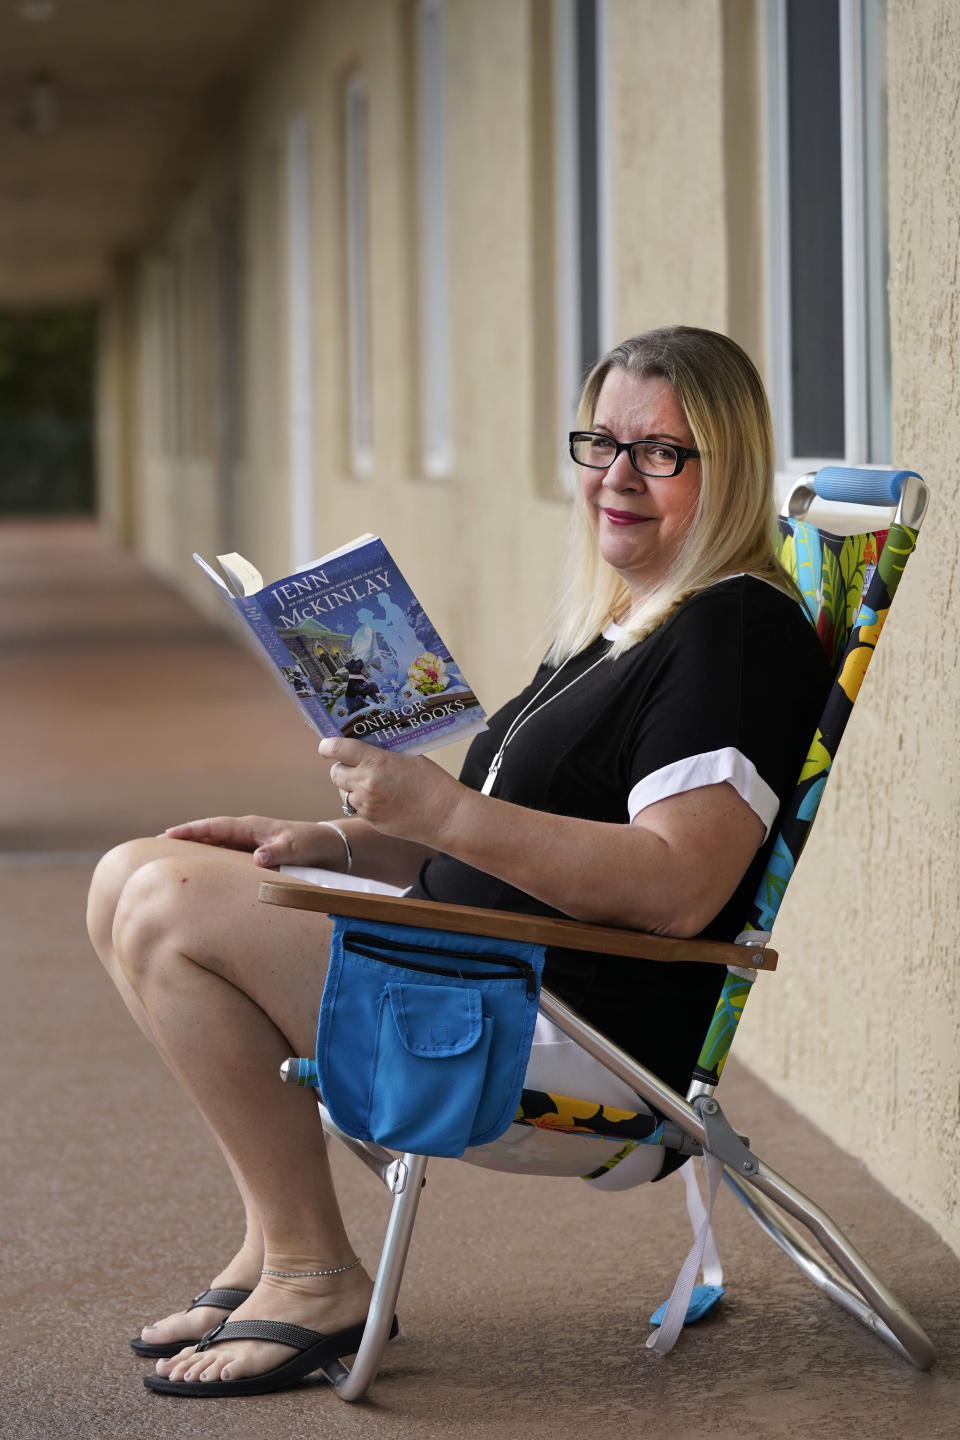 Kelly Vaiman poses for a photo along a walkway to her home where she likes to sit and read, Friday, Feb. 19, 2021, in Boynton Beach, Fla. Vaiman is an avid cozy mystery reader. (AP Photo/Wilfredo Lee)